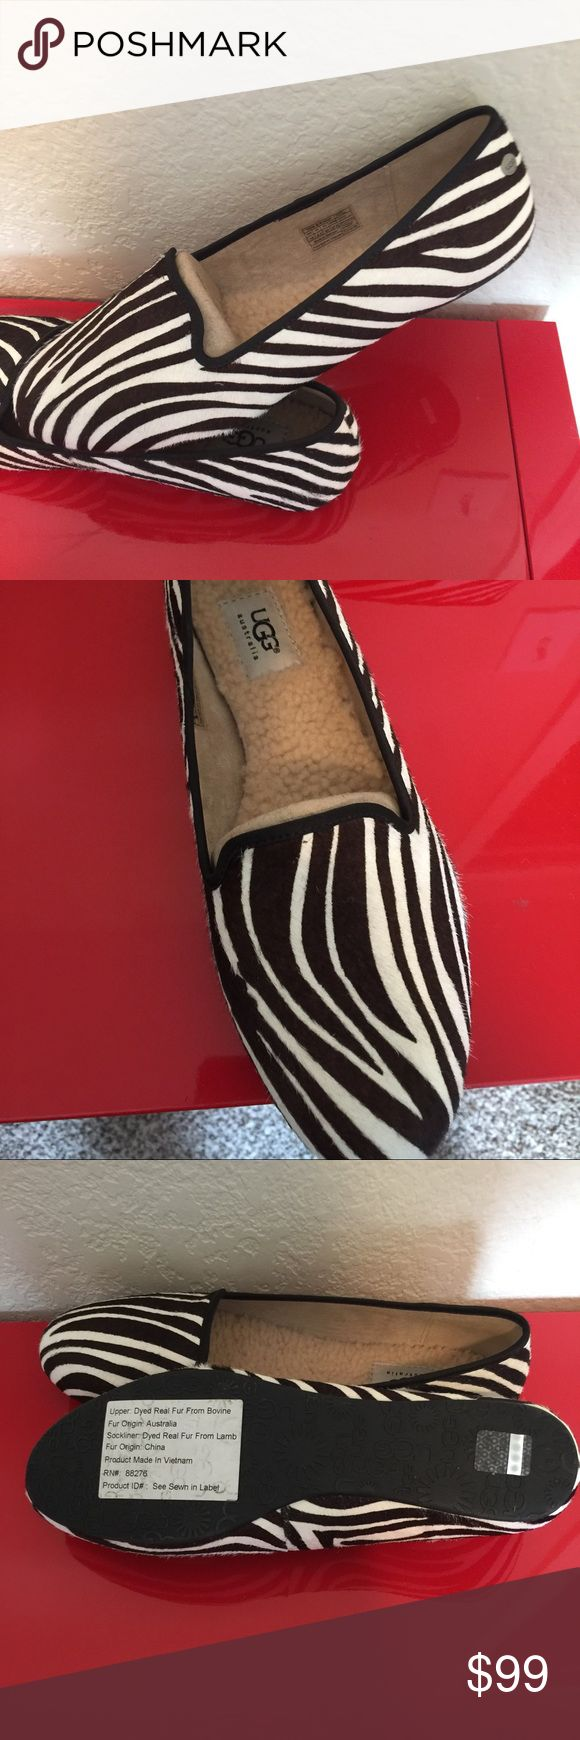 NWT UGG real fur zebra shoes 10 Real fur upper from Australia  Sherpa fur lined soles Size 10  Compare to the Jonette Snake shoe at $140.  True to size 9.5-10 comfortable UGG Shoes Flats & Loafers